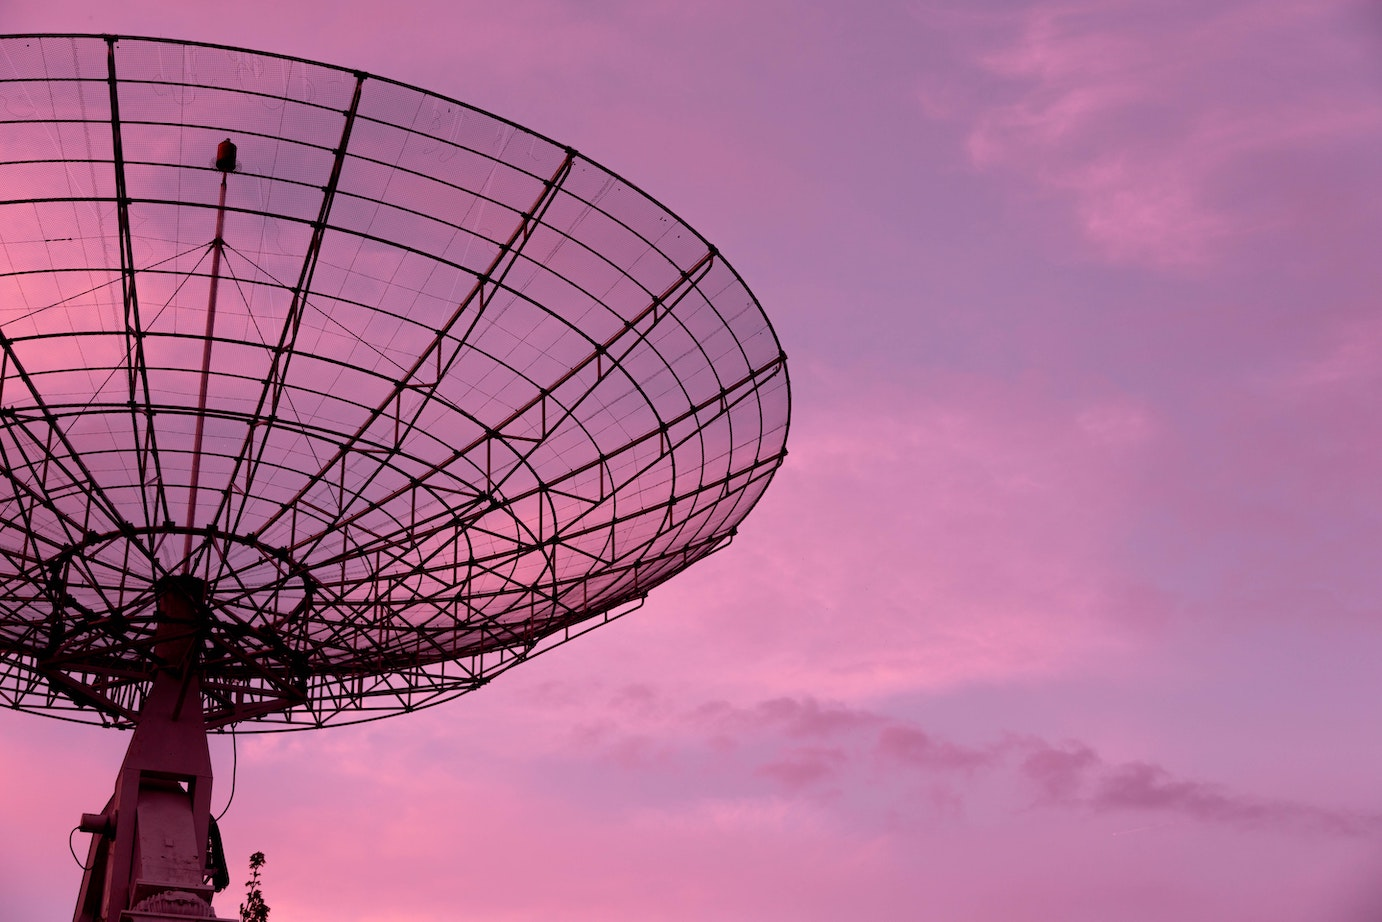 Satellite against a pink sunset